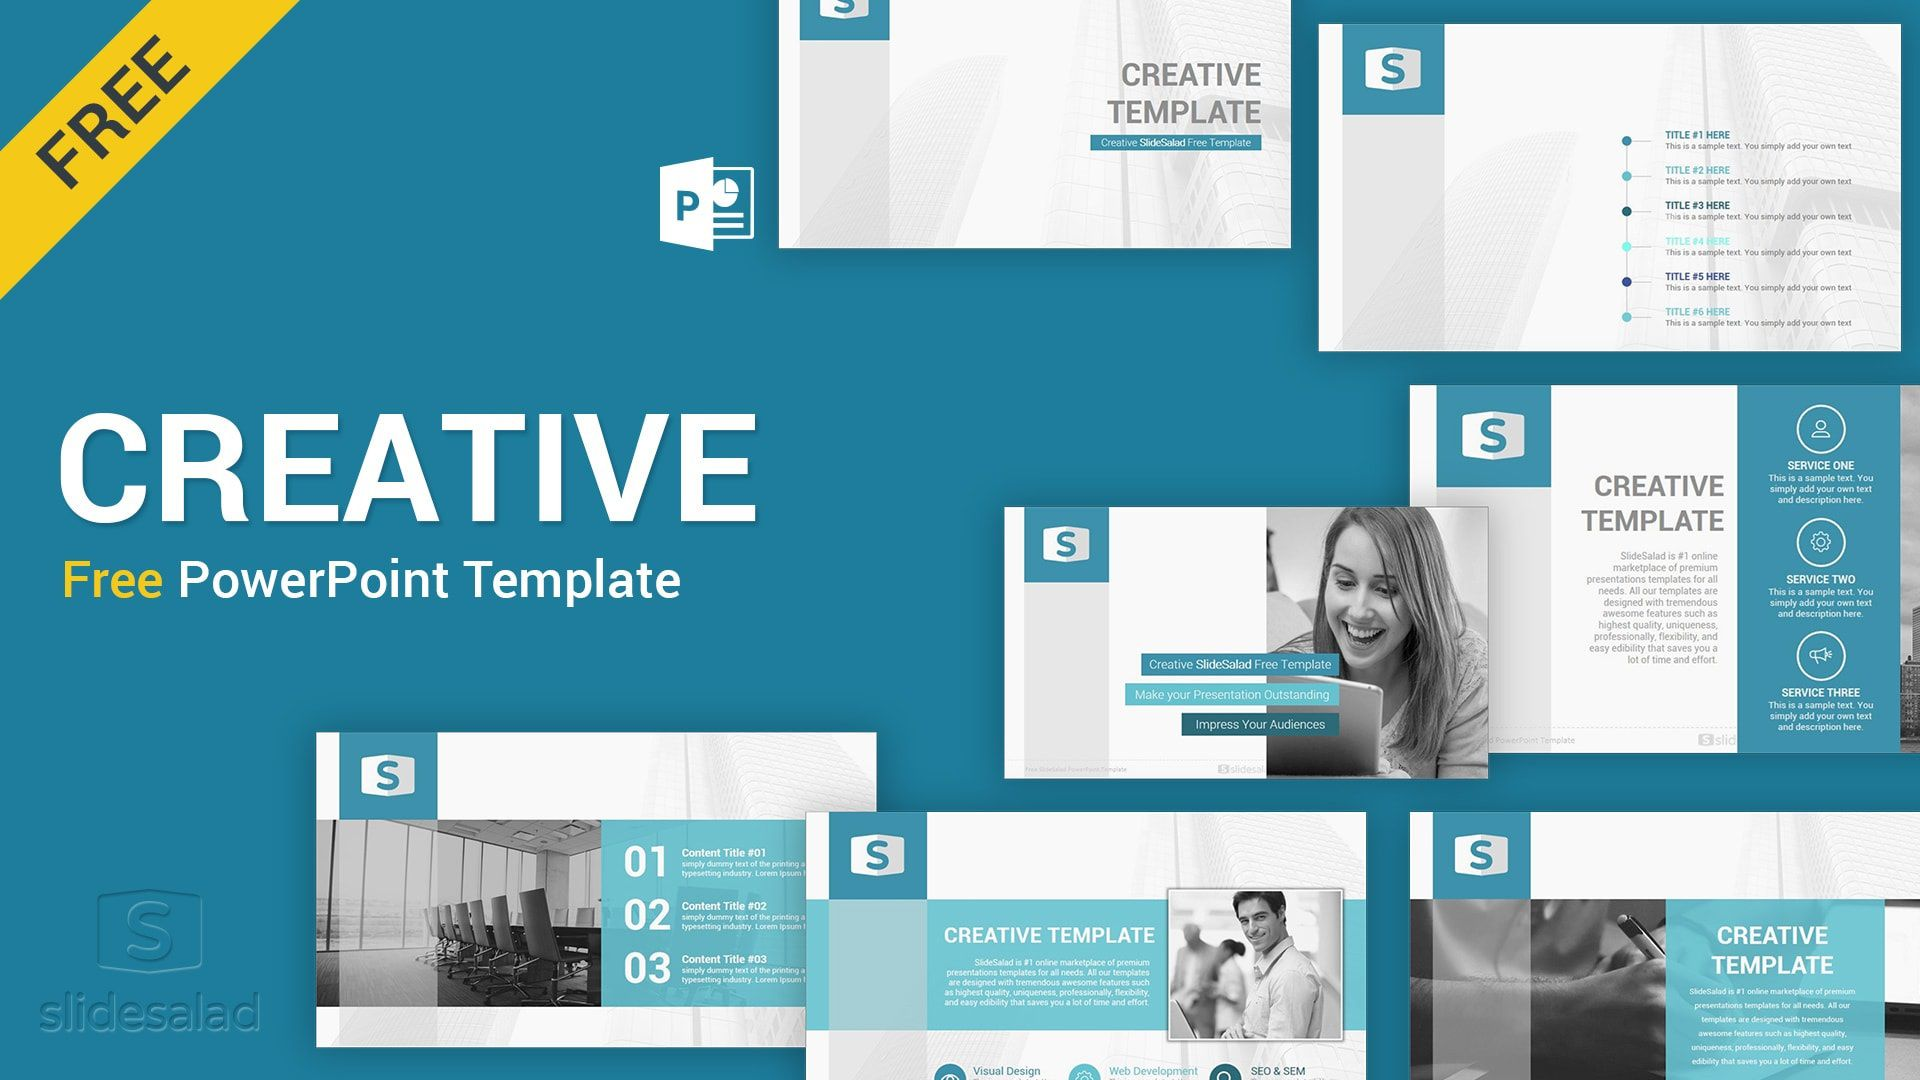 006 Excellent Simple Ppt Template Free Download For Project Presentation Highest Quality Full